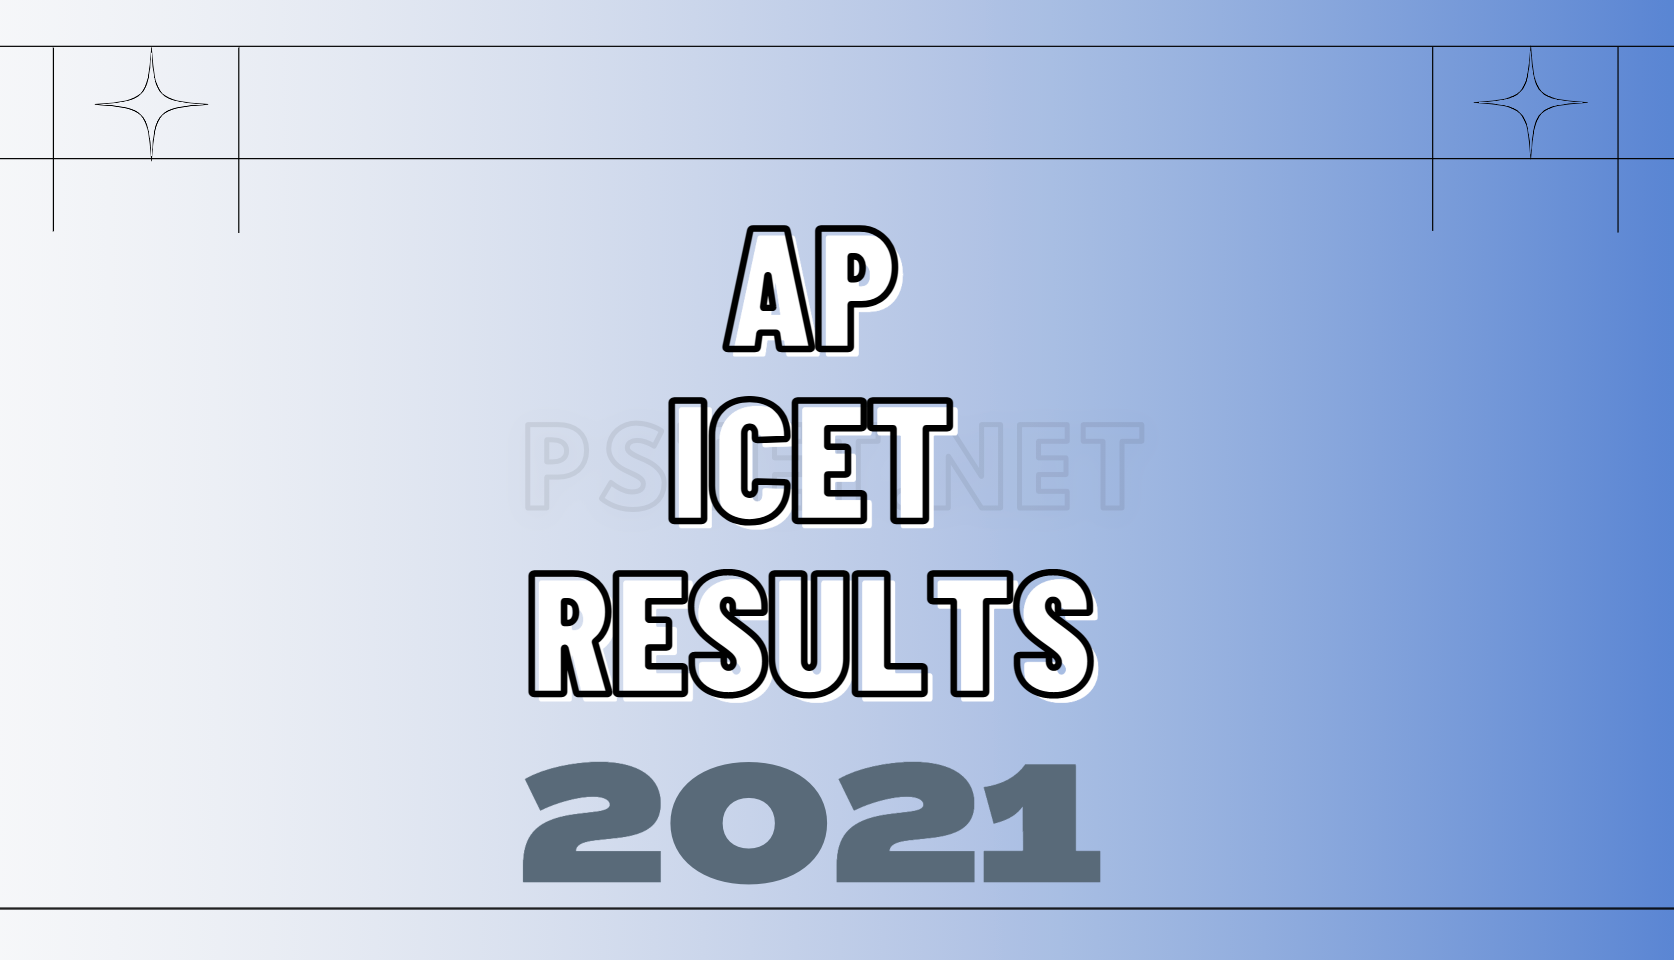 ap icet 2021 results, ap icet results 2021,